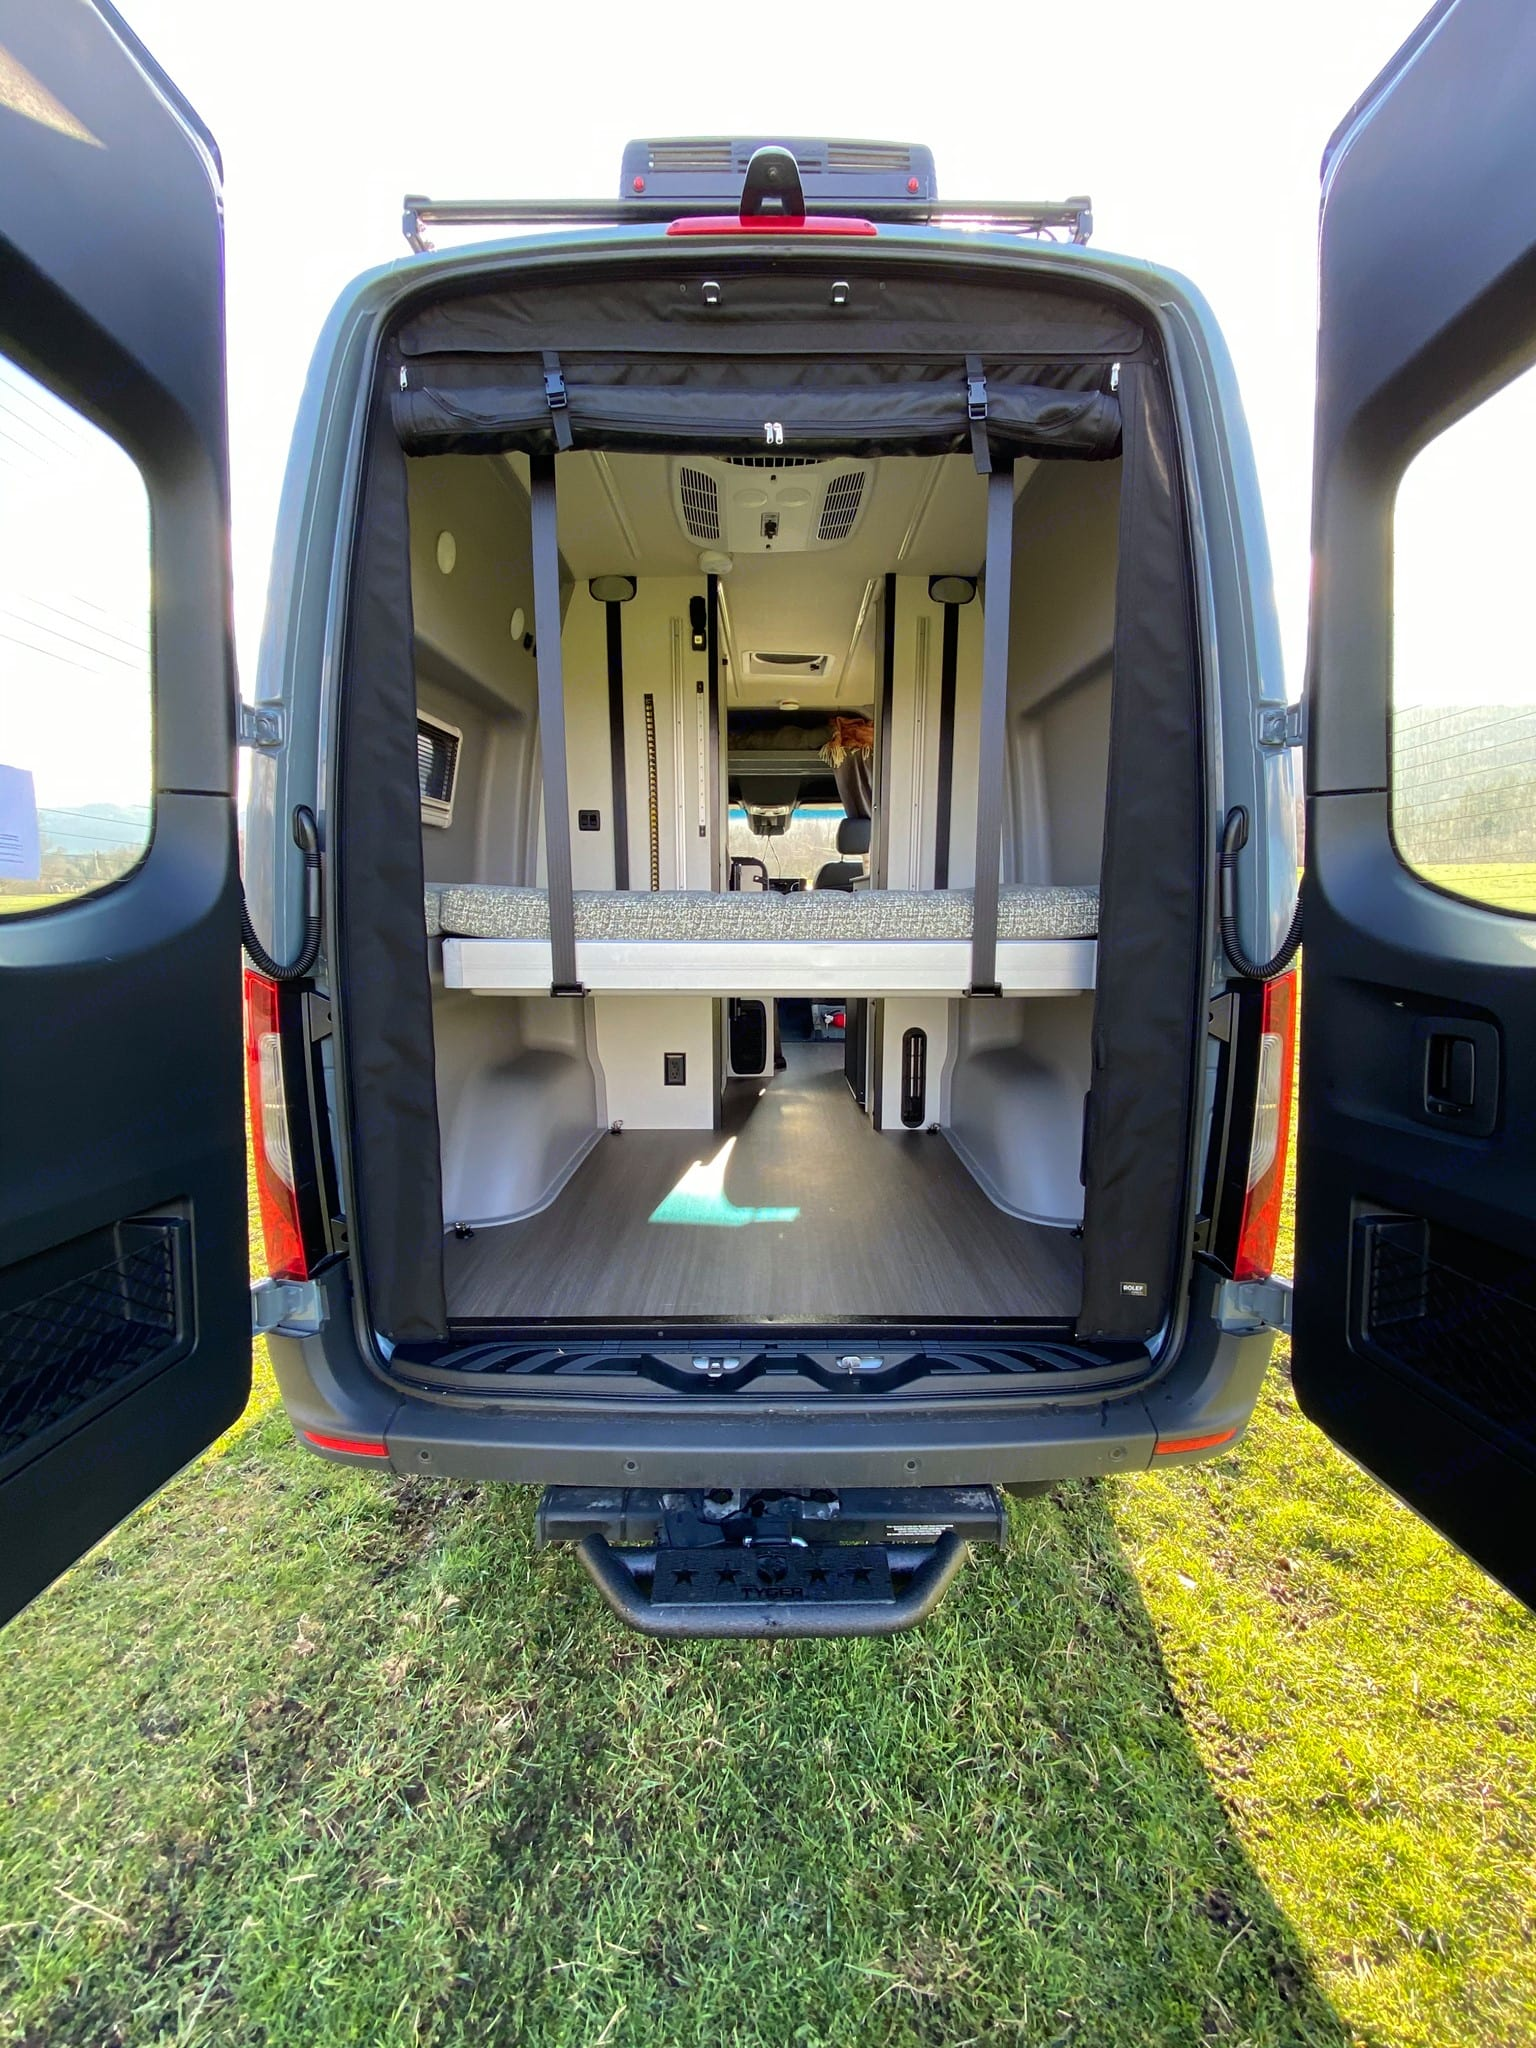 Bed lifts up and down to allow for more storage in the back while driving.. Winnebago Mercedes Sprinter 2020